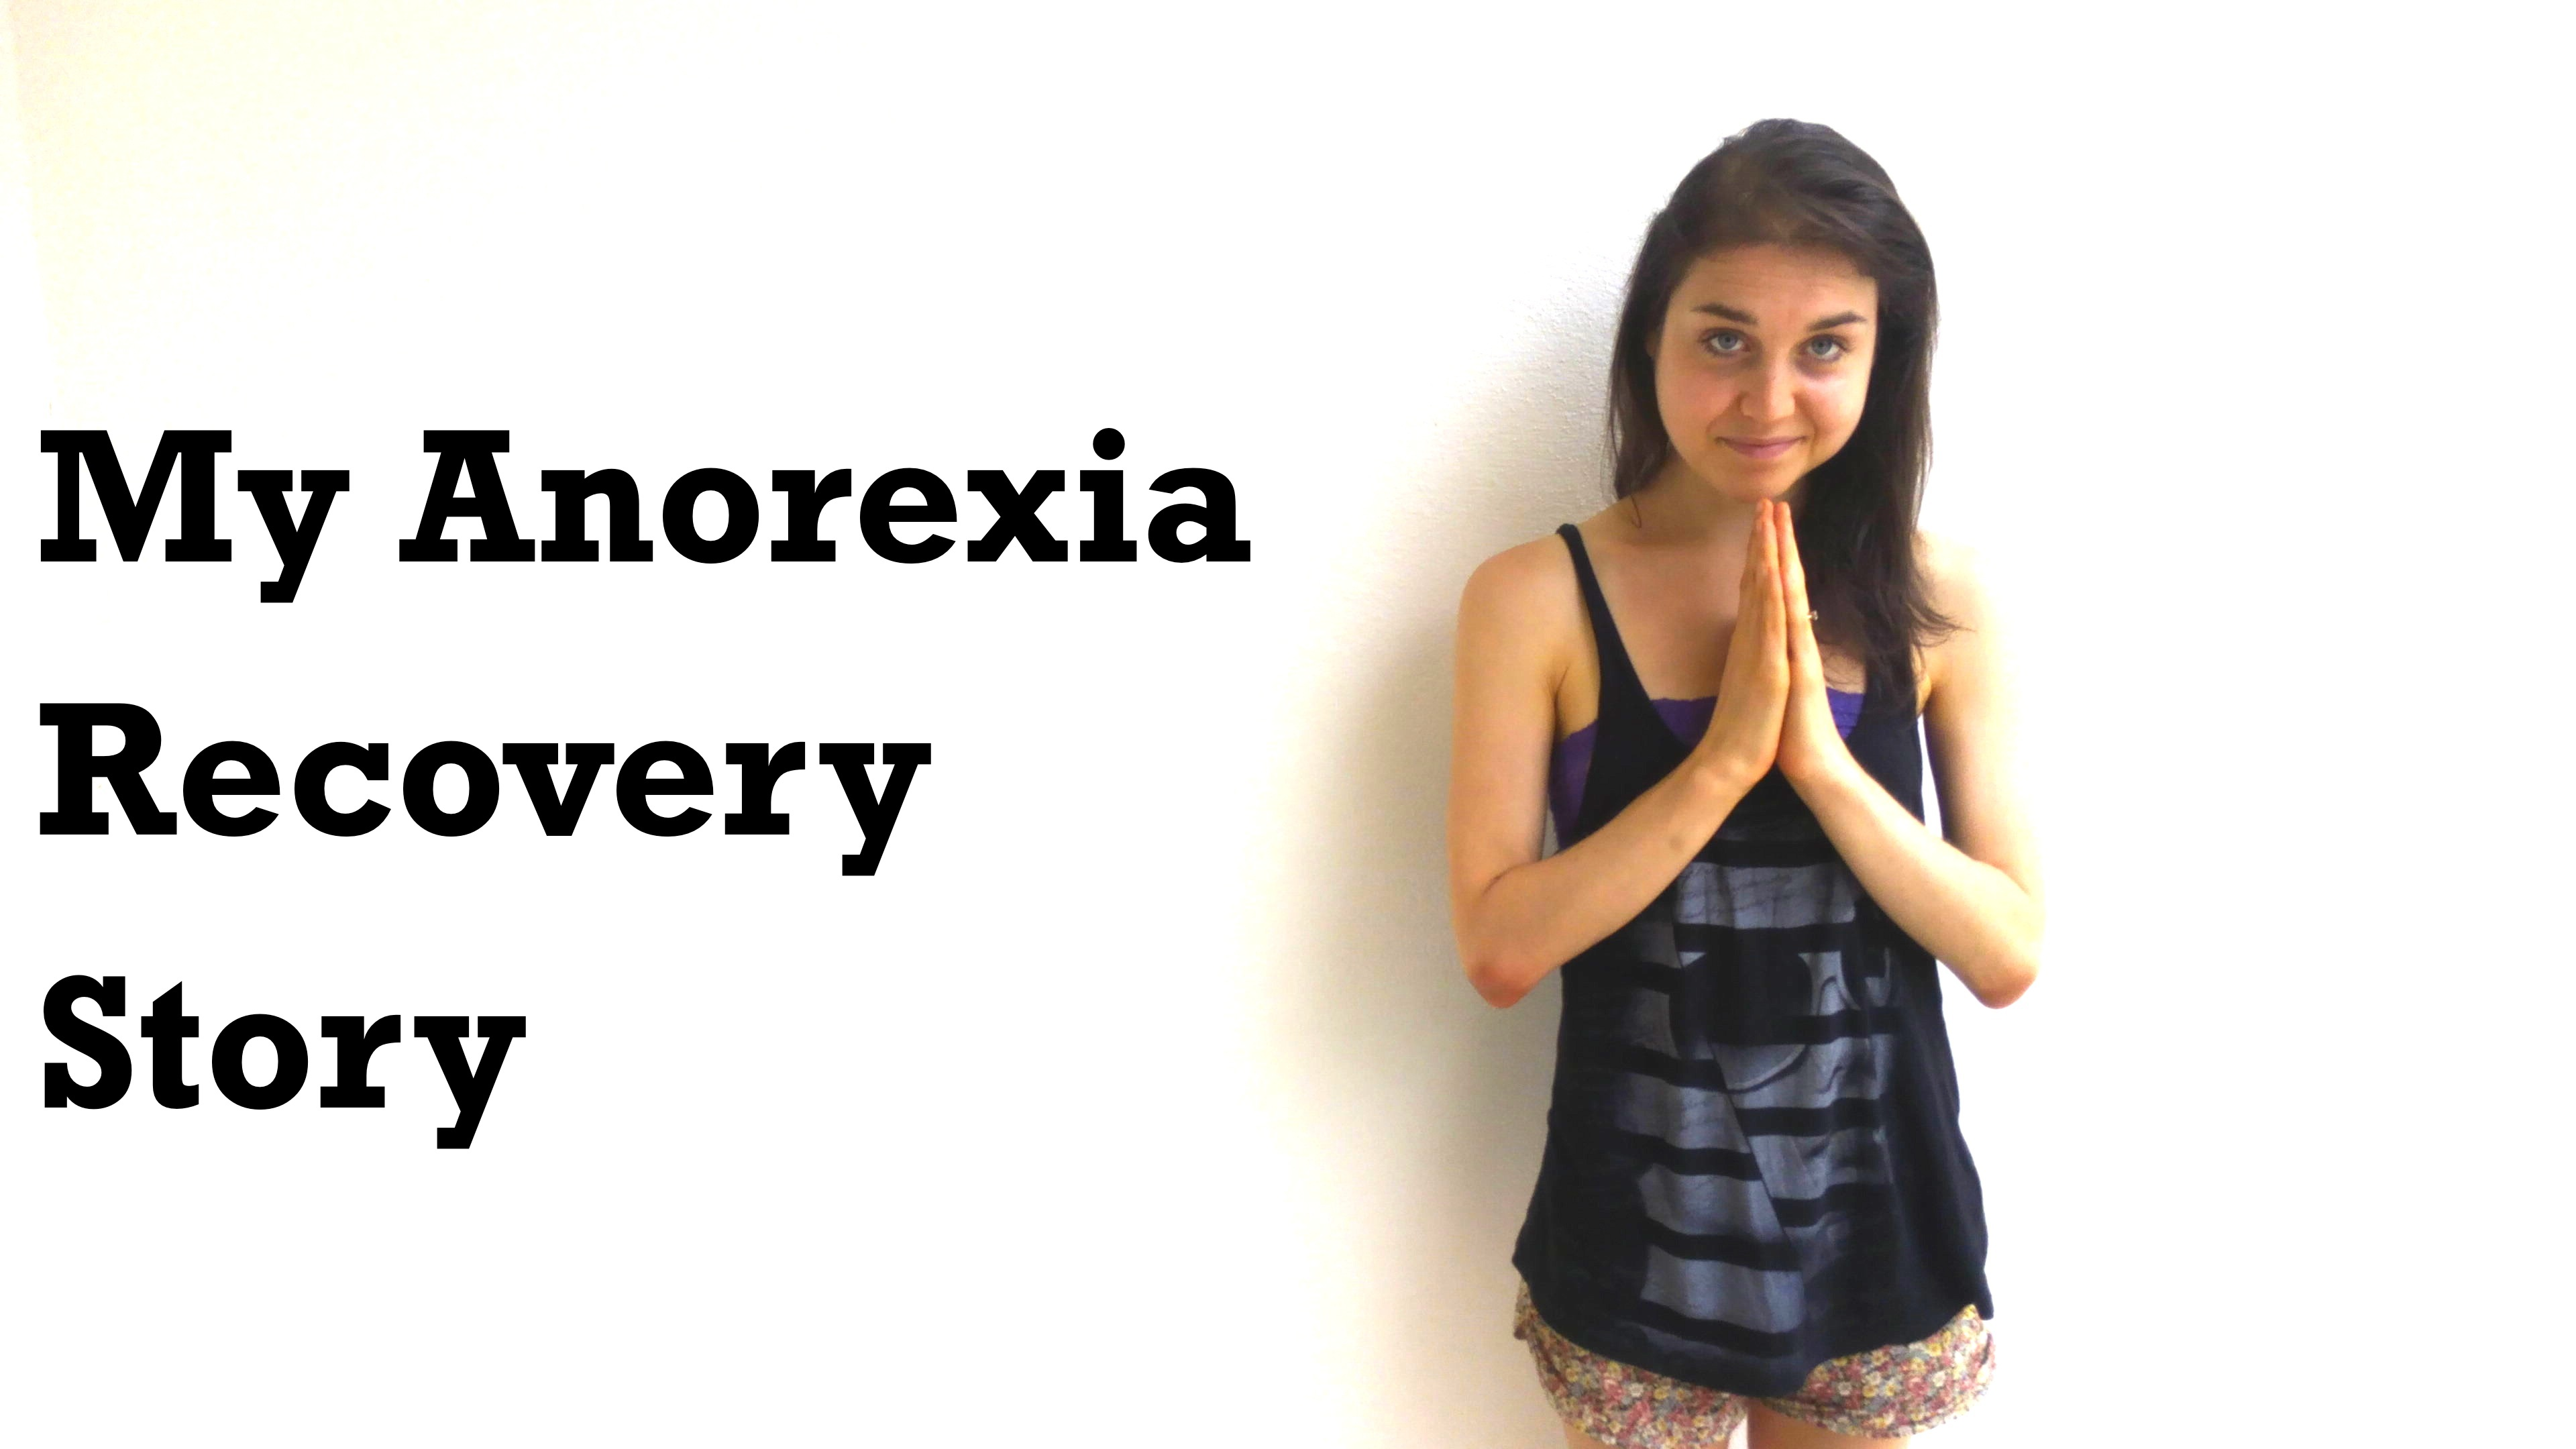 My Anorexia Recovery Story